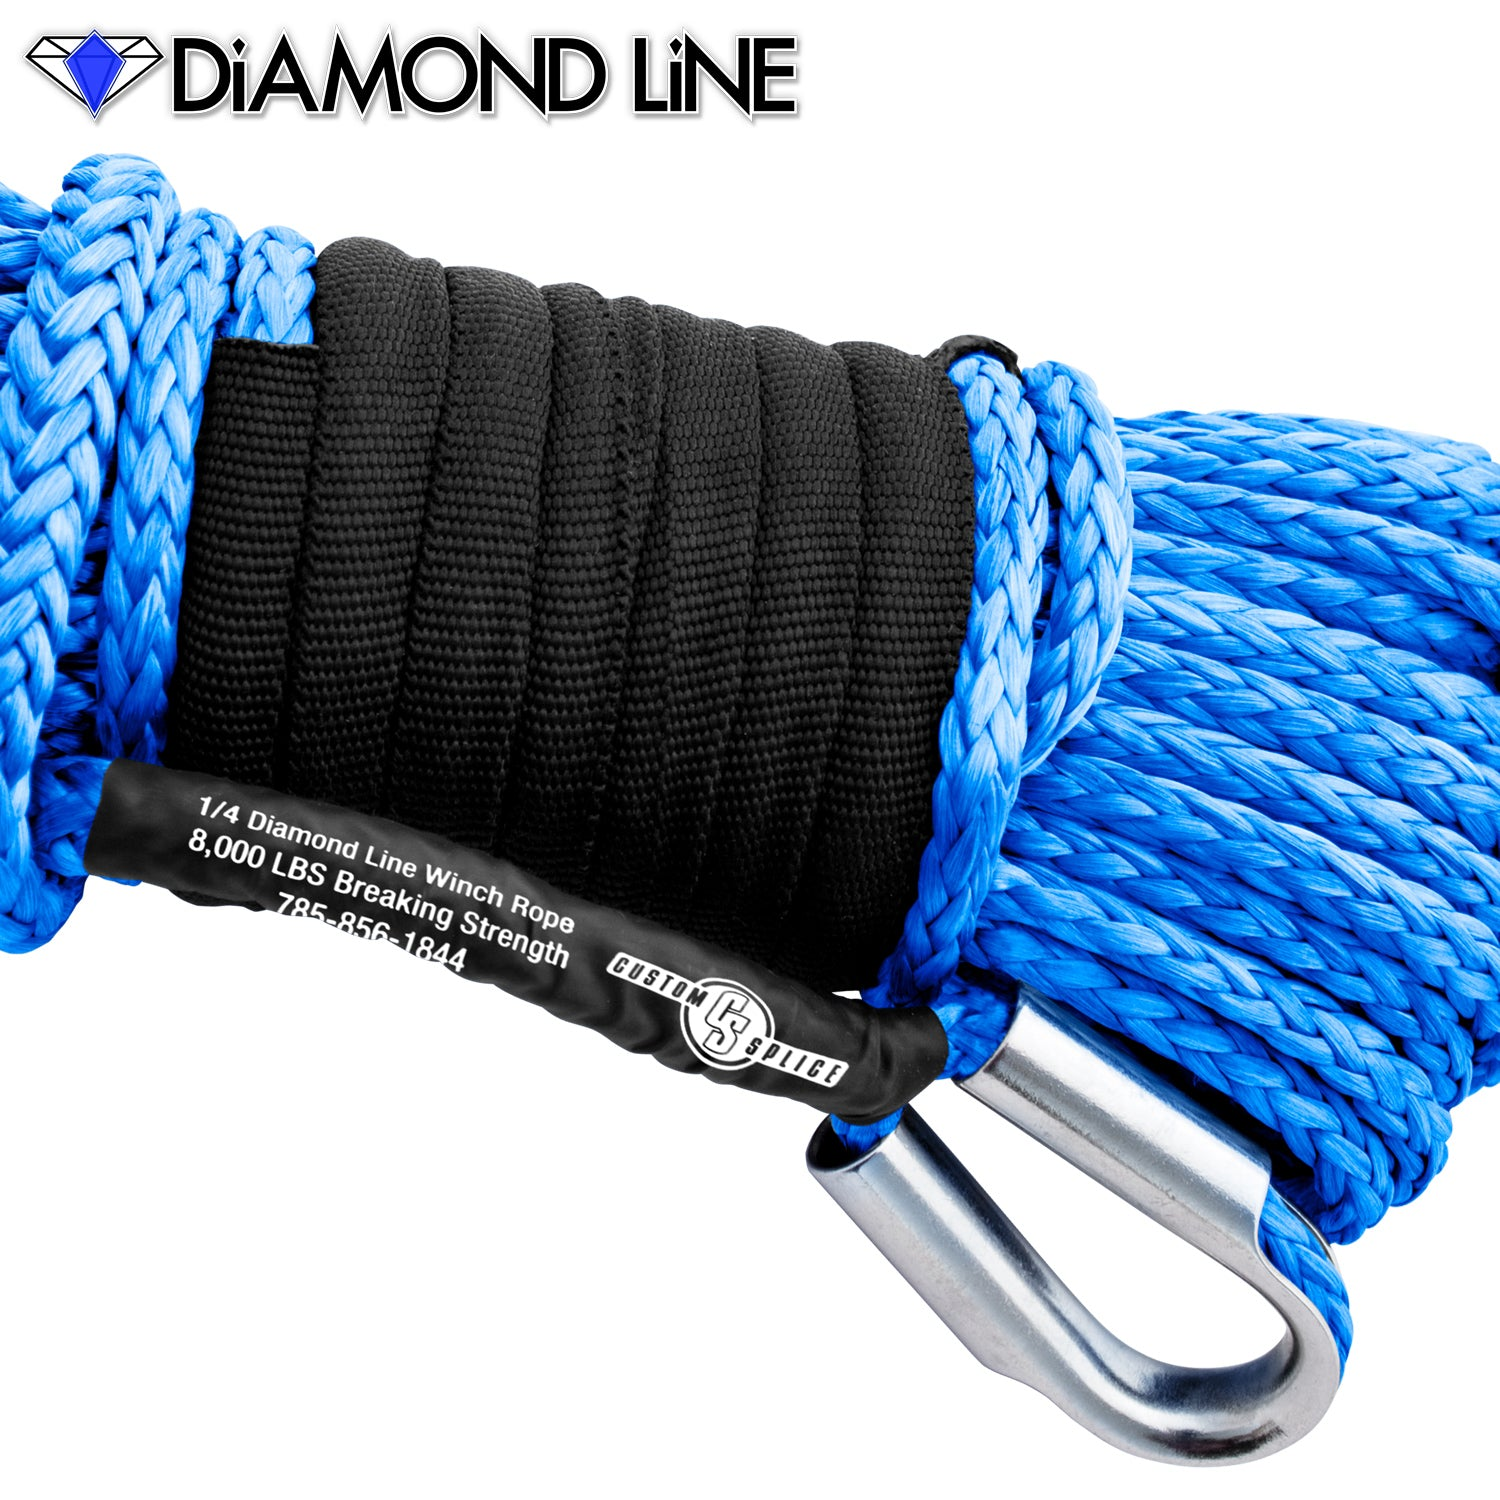 "1/4"" Diamond Line Synthetic Winch Rope with Tube Thimble."